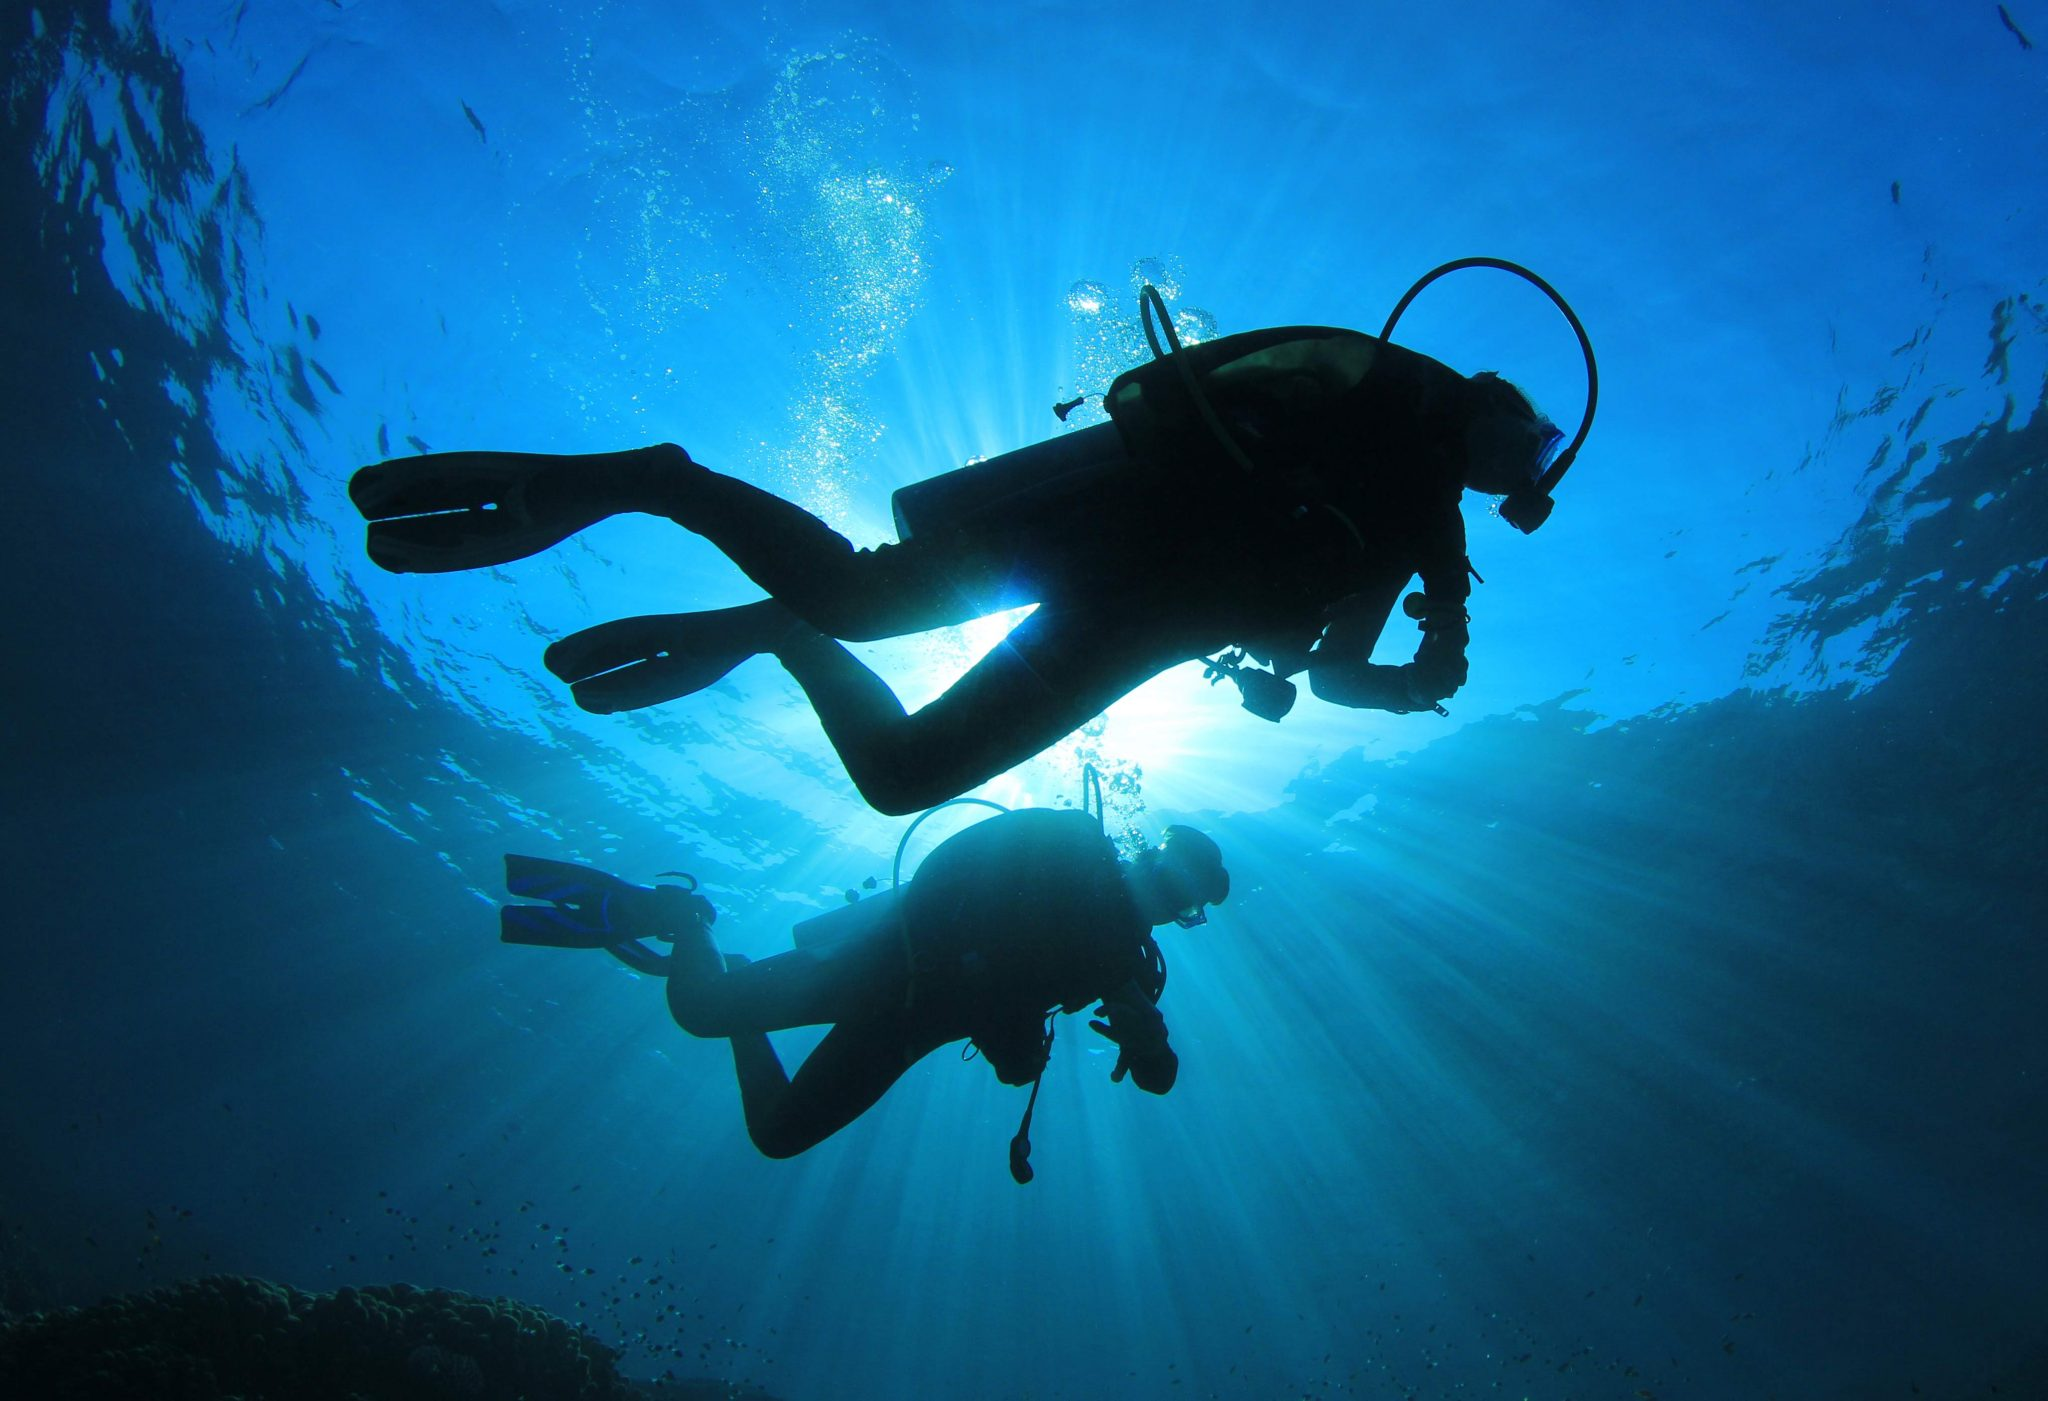 bintan-diving-is-good-for-beginners-and-unexperienced-divers-2